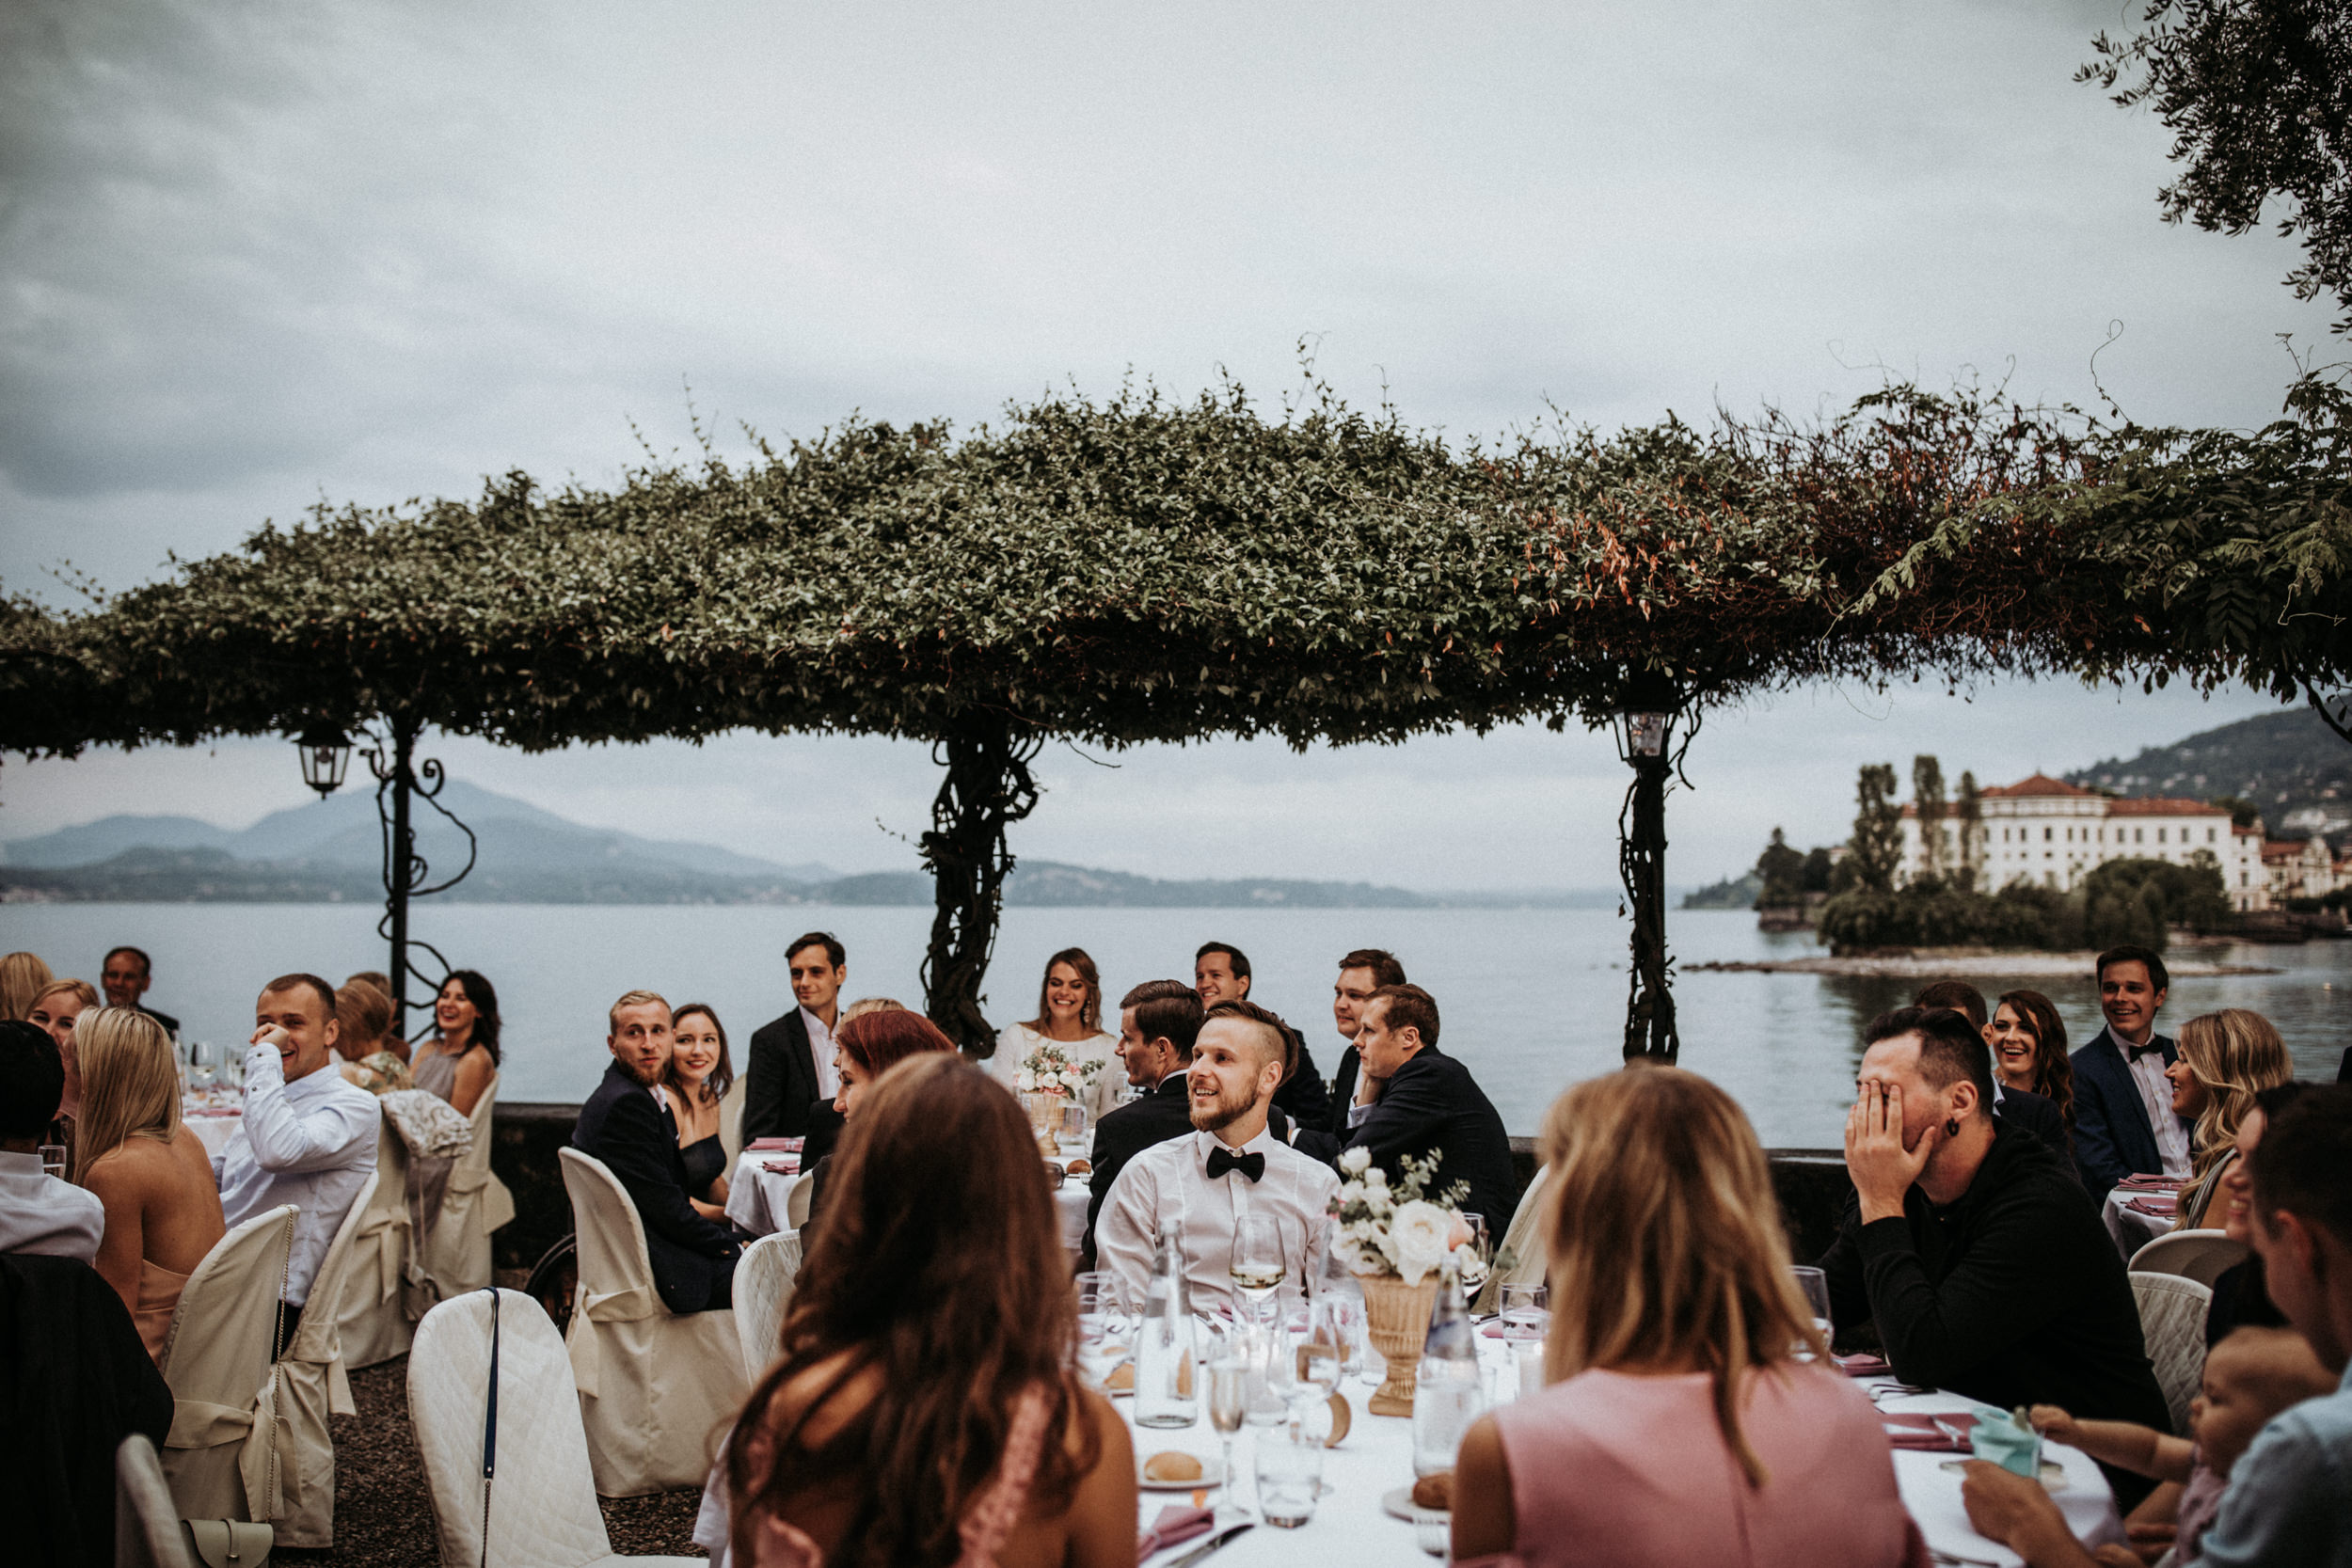 dm_photography_Lago Maggiore_Wed_281